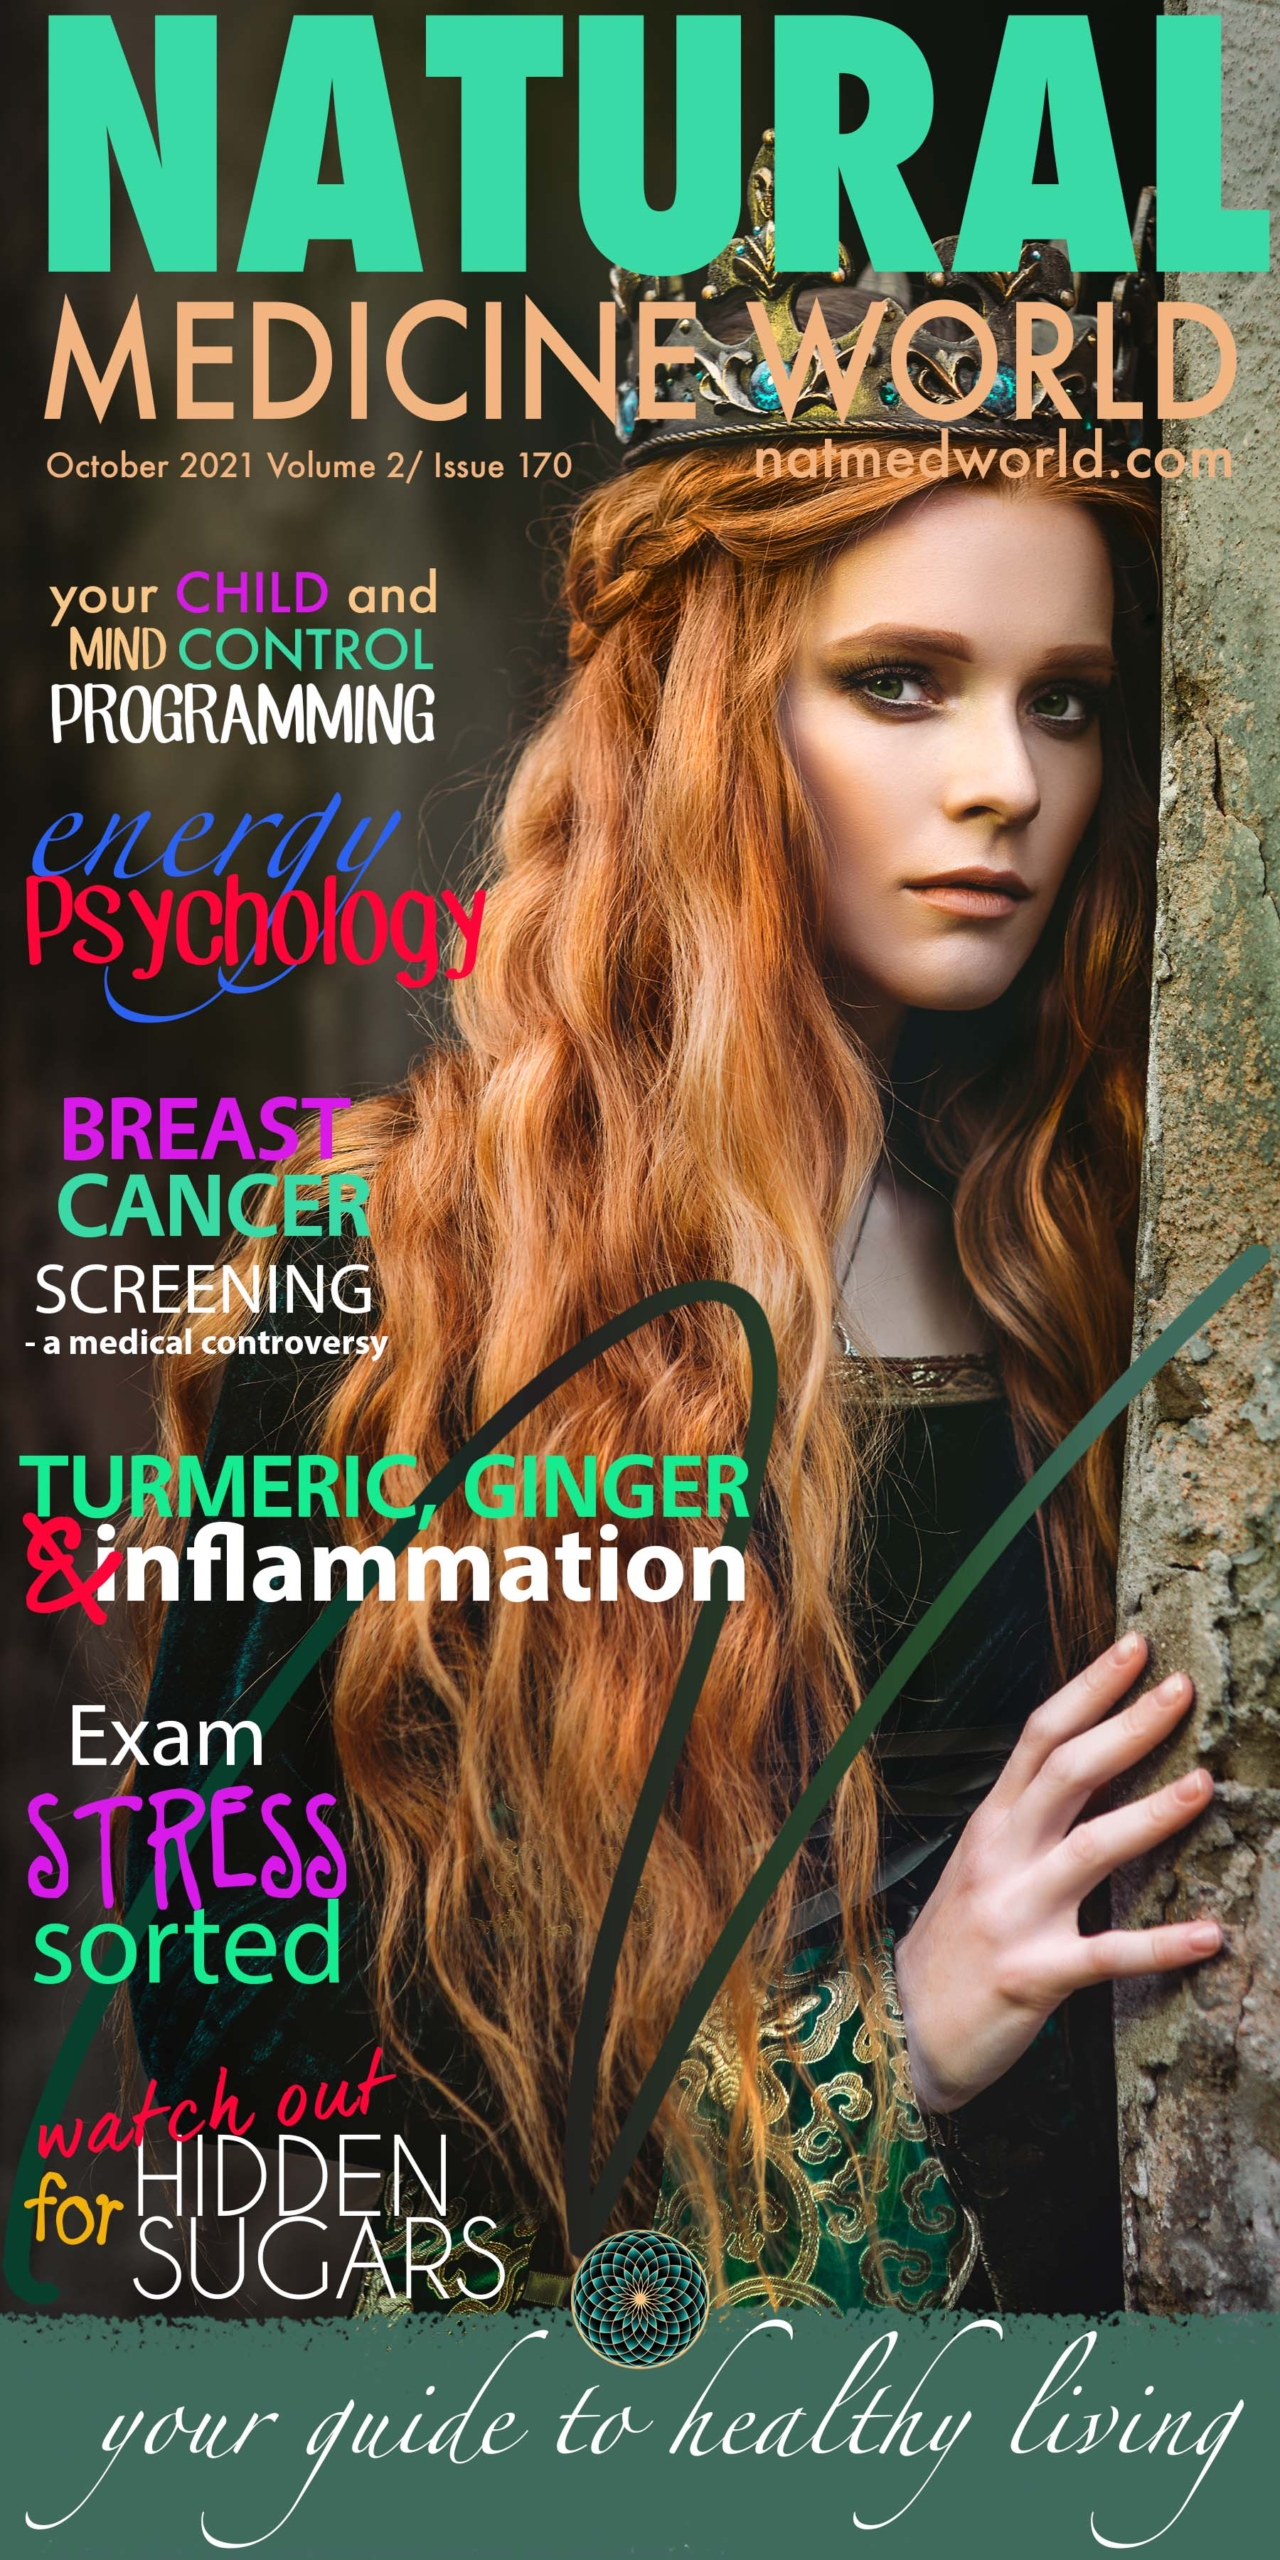 NMW Cover October Issue 170